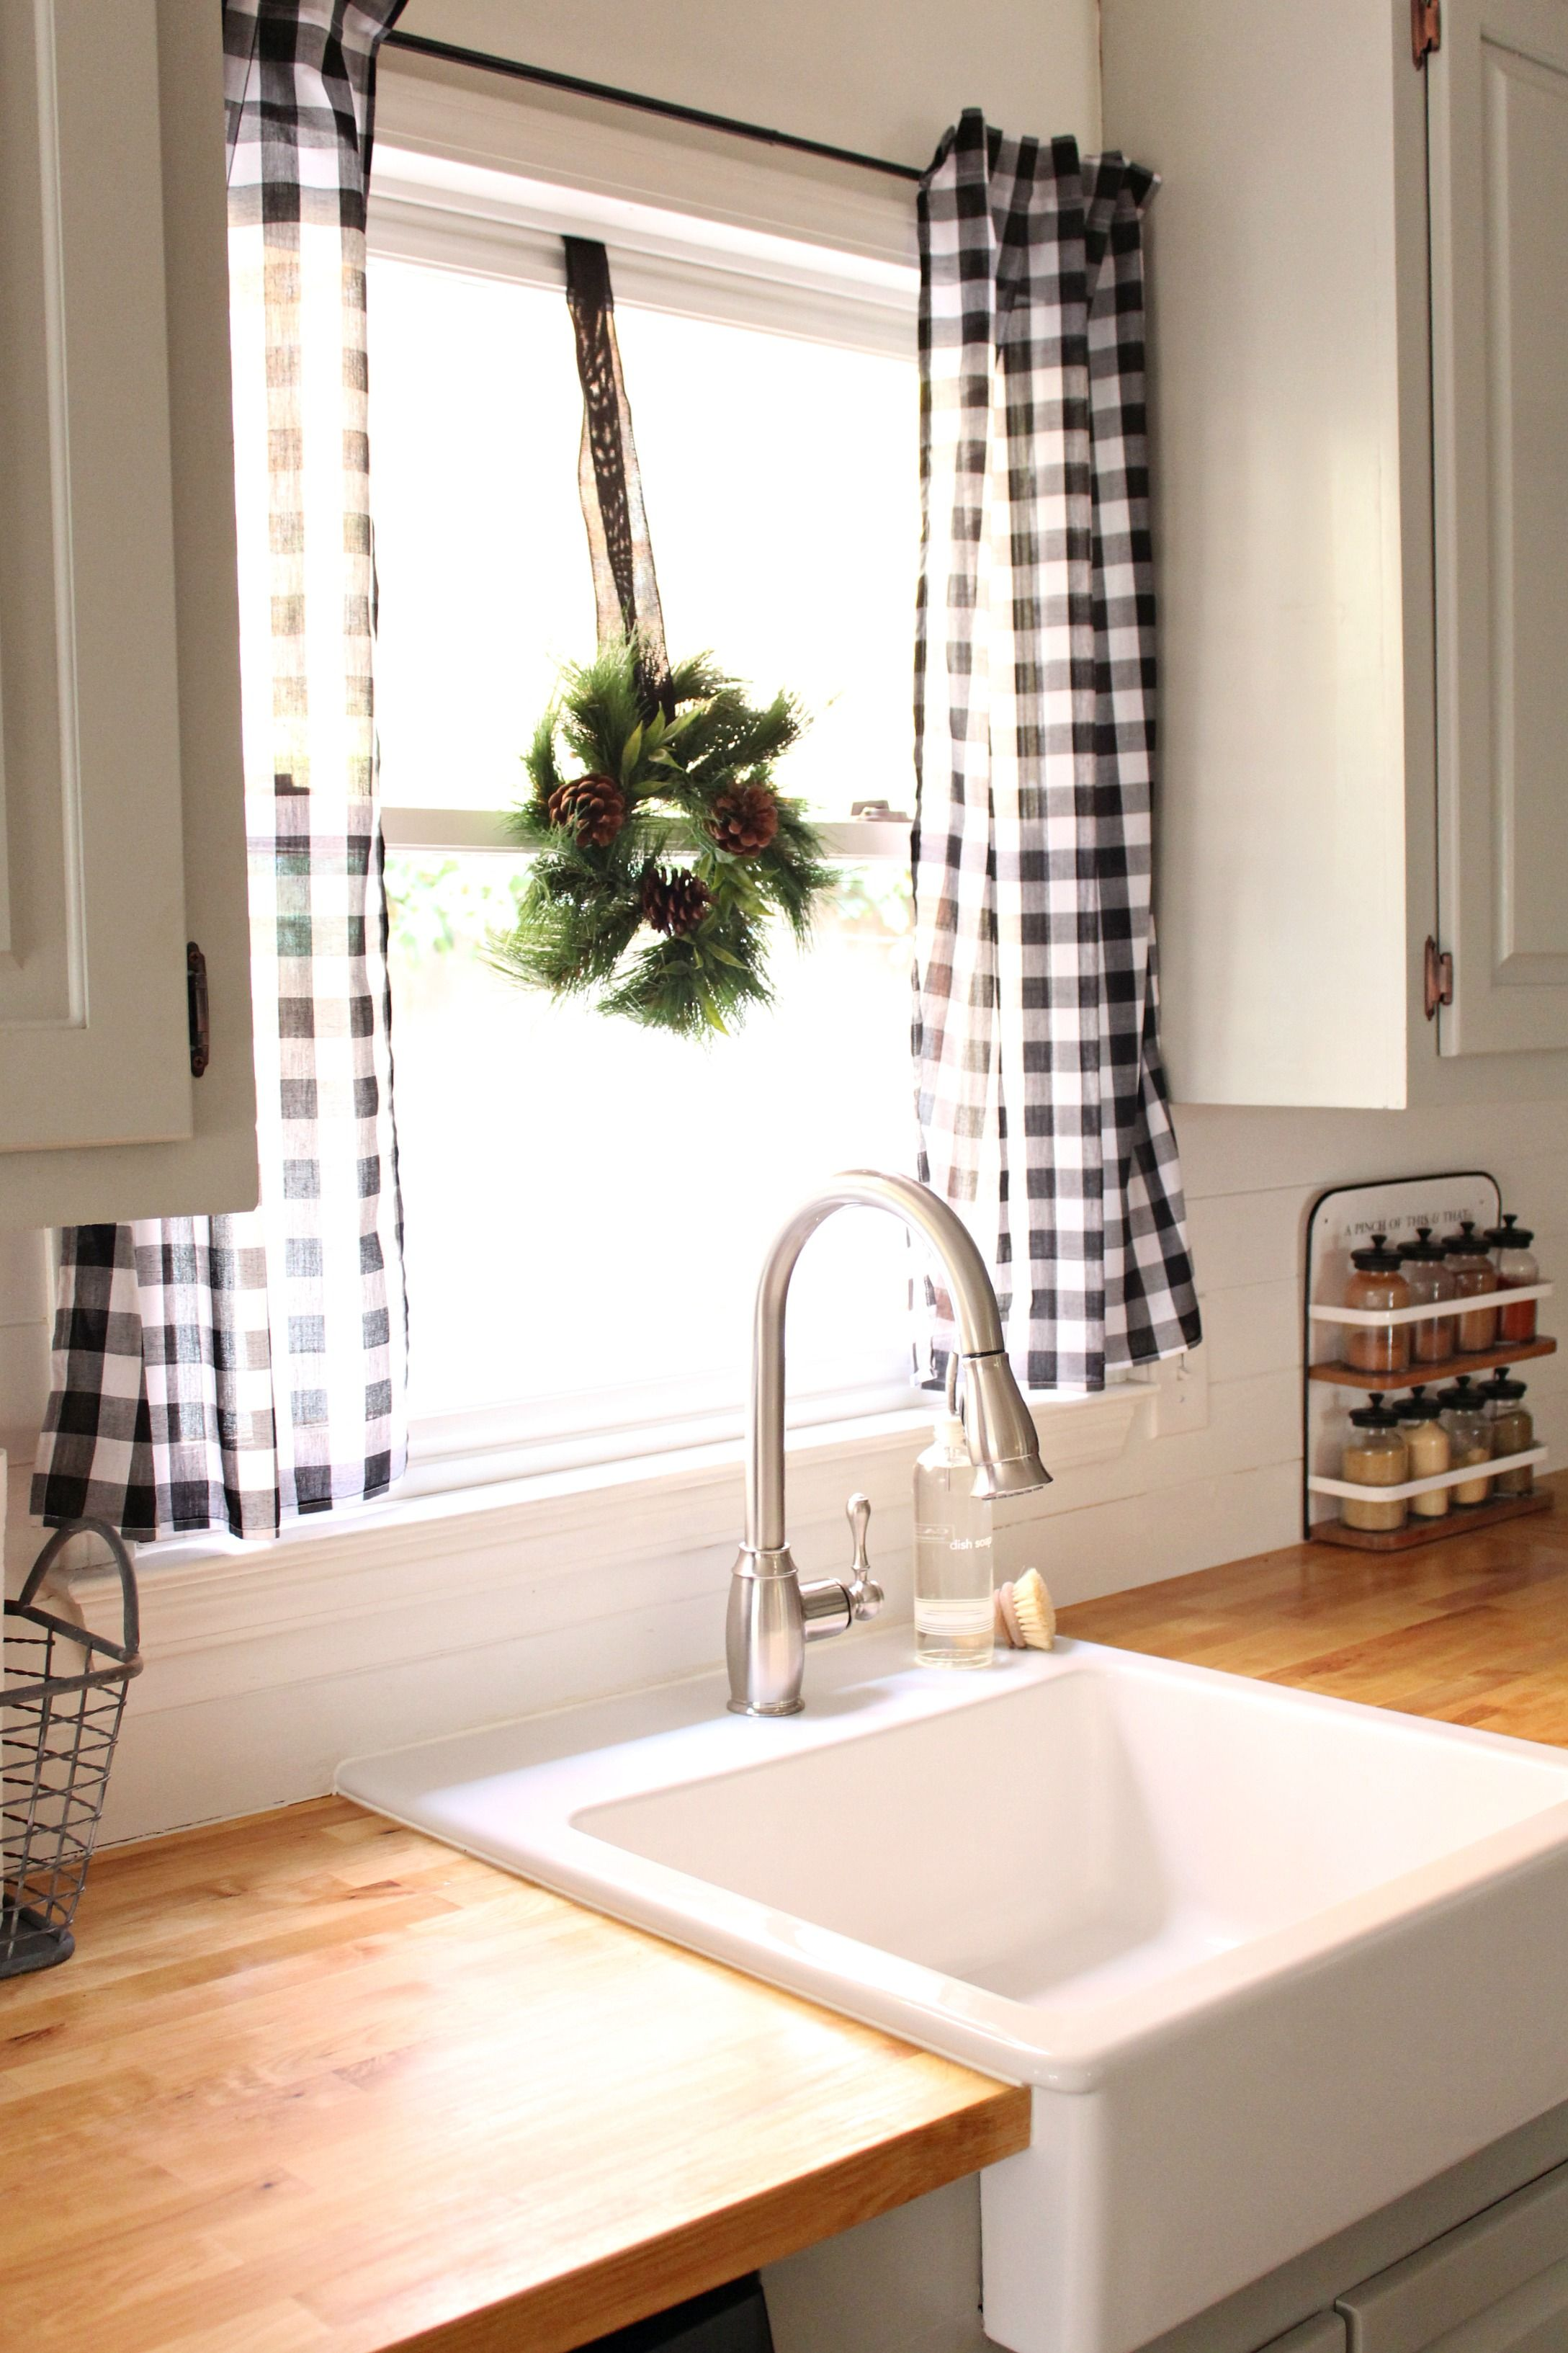 pink blue com plaid kitchen drapes tartan black and tablecloths rd check myfamilyliving red valance demandit ikea country green nursery dunelm curtain uk cream white curtains checkered out gingham